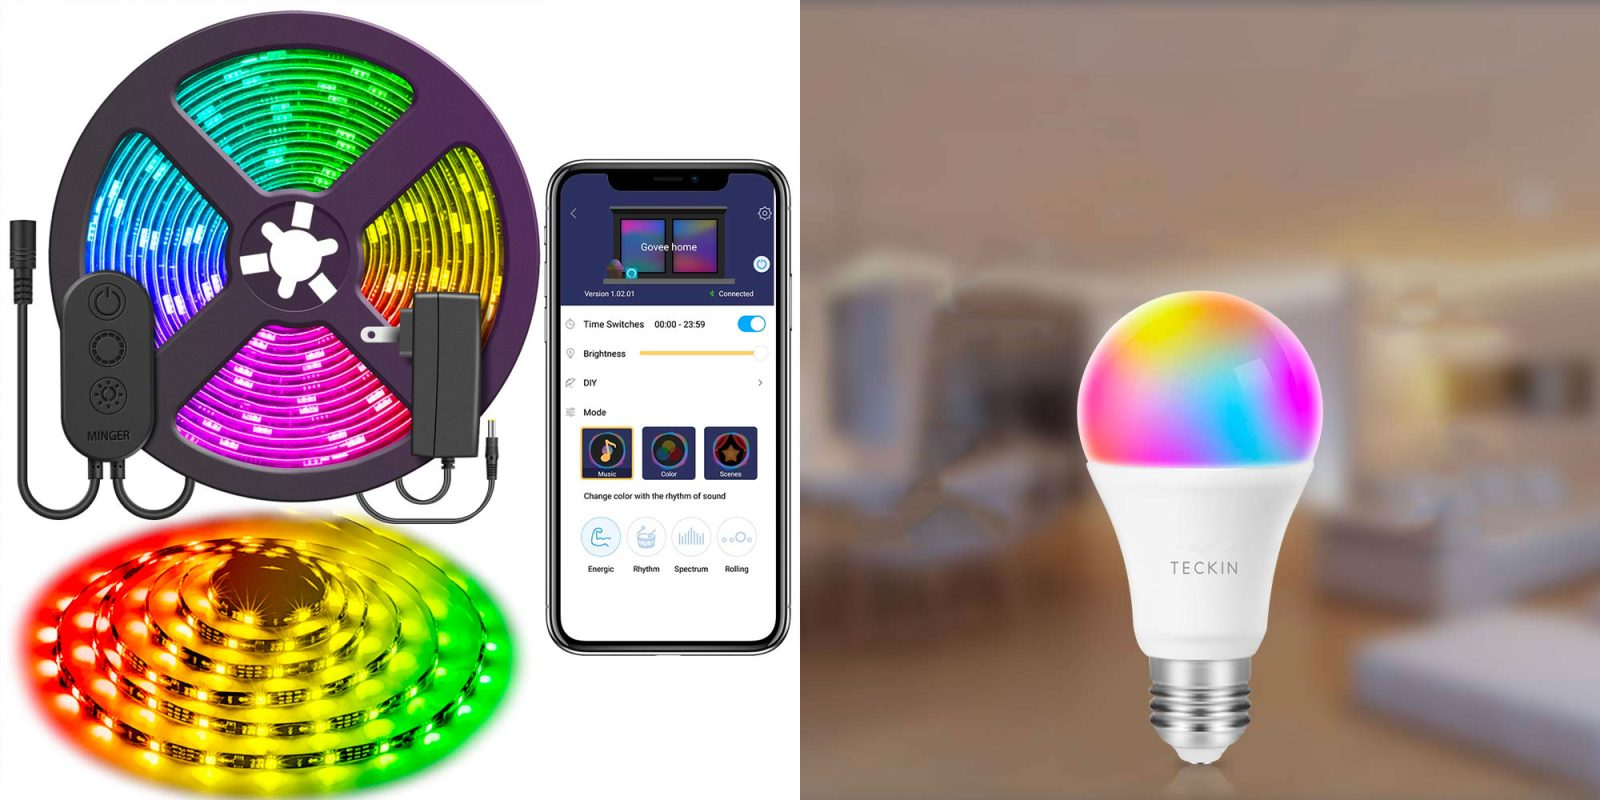 Upgrade your smart home with voice-controlled RGB lighting